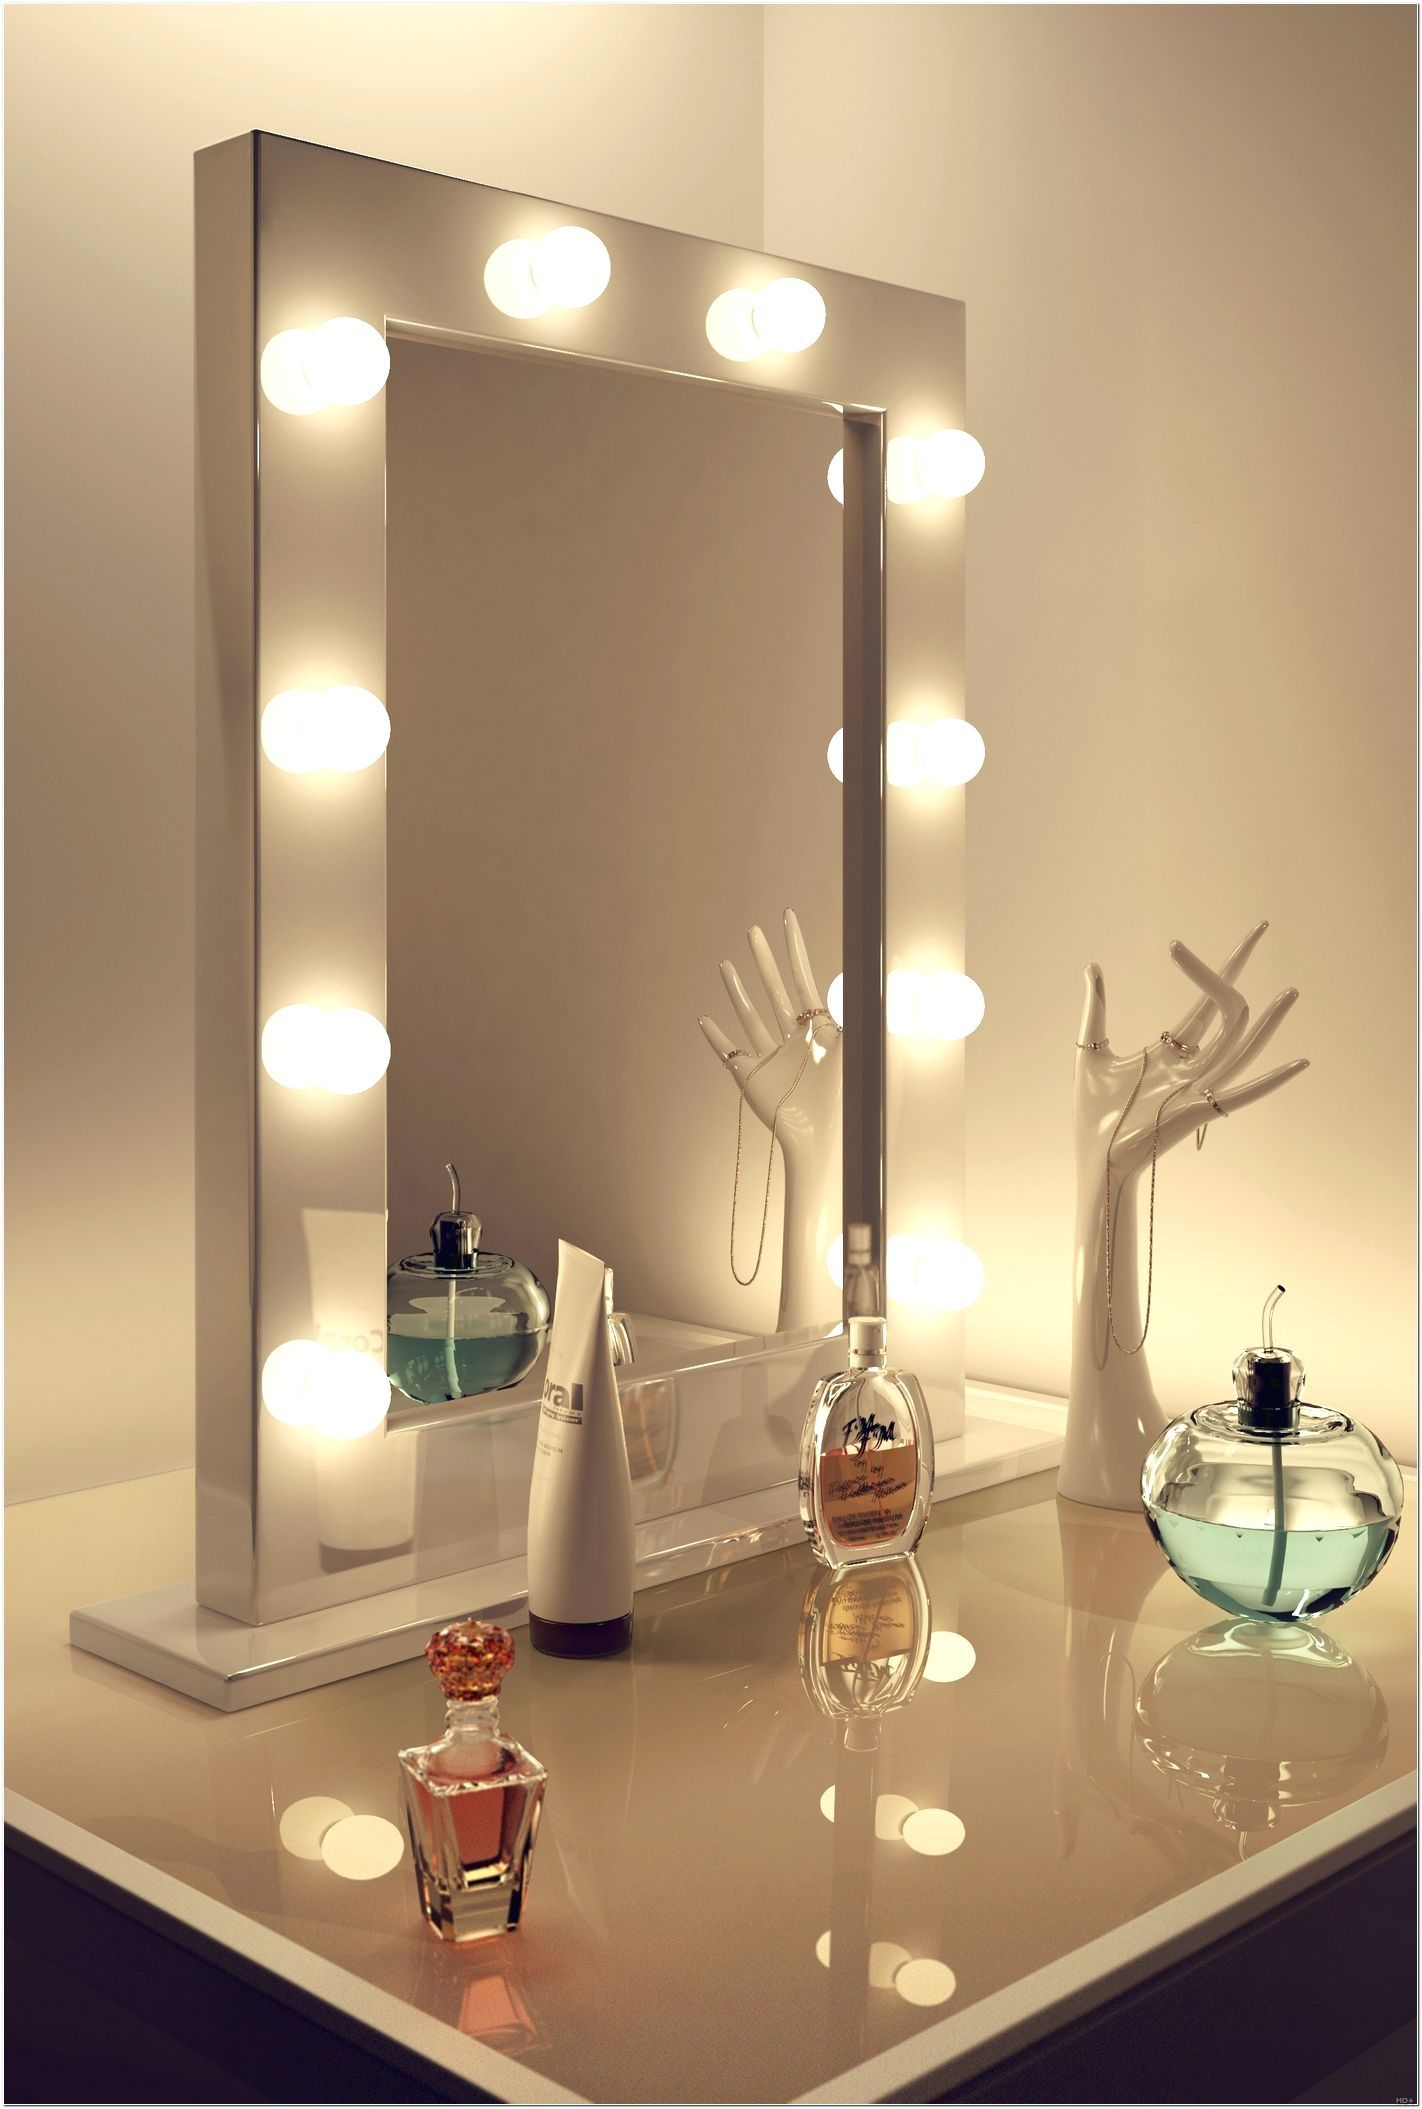 Dressing table mirror design bedroom design pinterest dressing